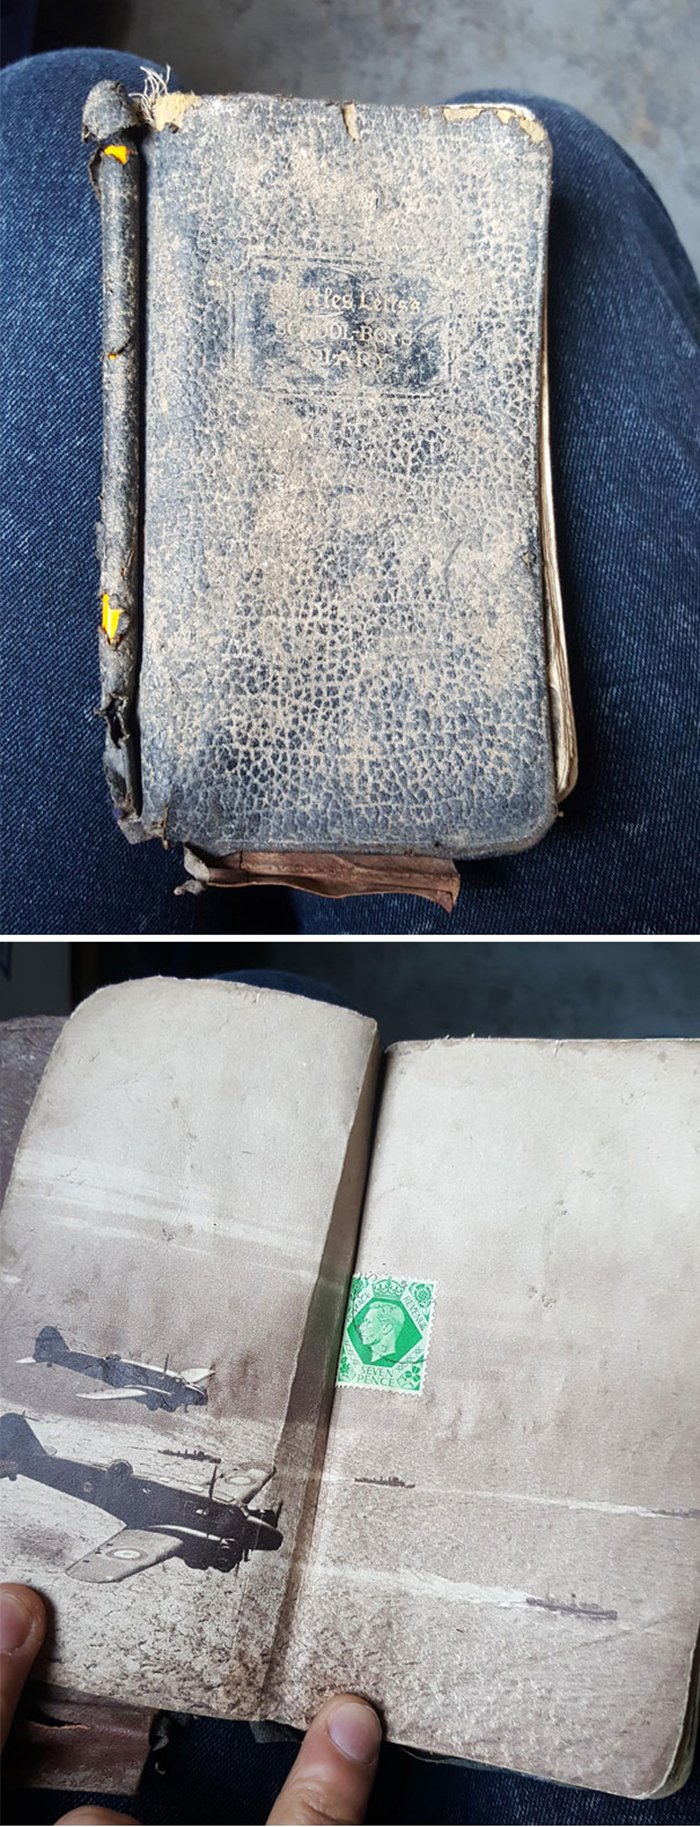 strange things discovery 1941 diary